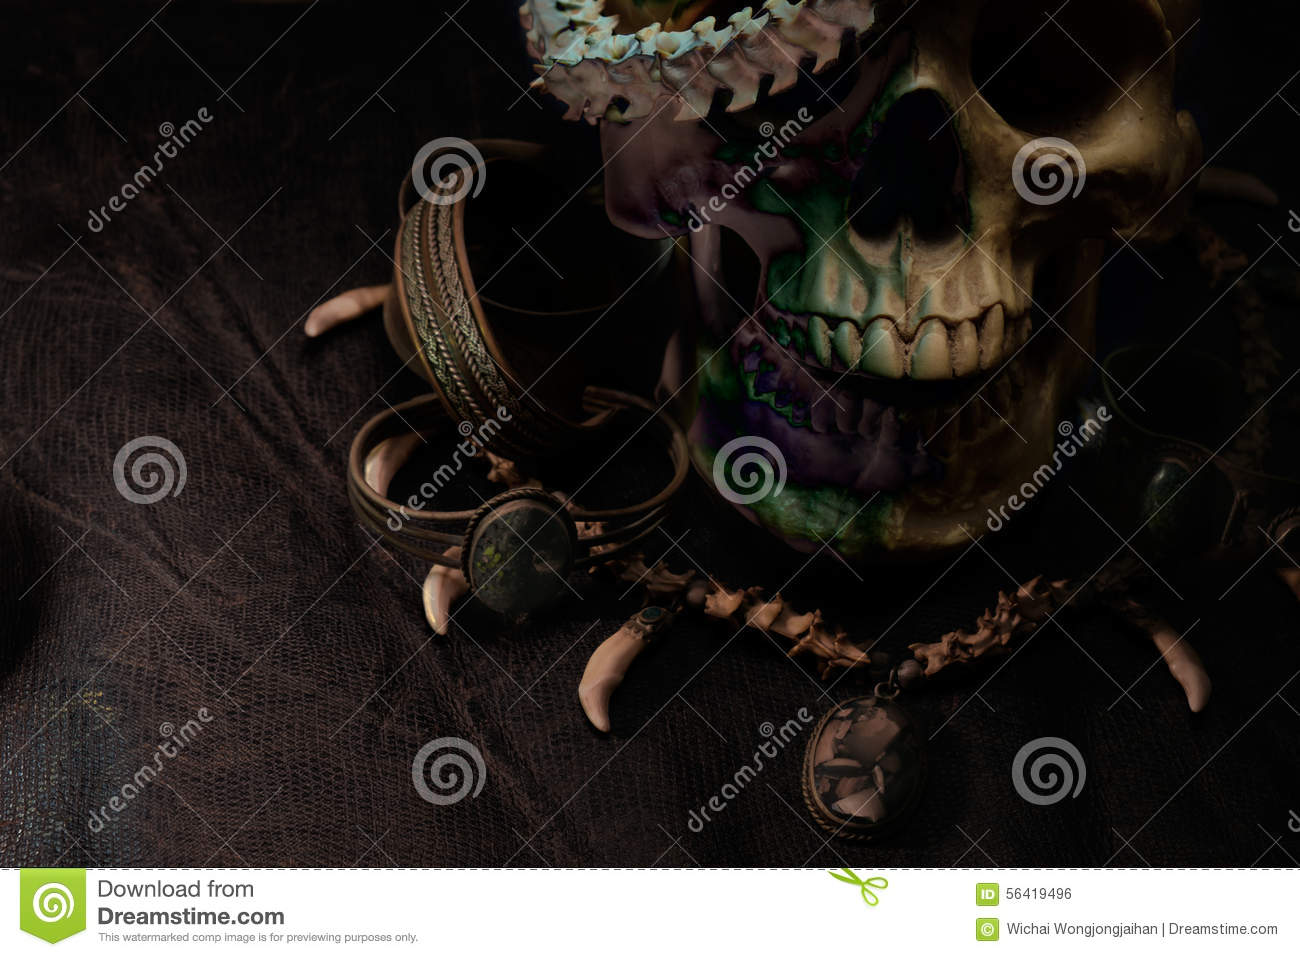 Skull Stock Photo Image Of Ambiance Crime Death Horror 56419496 Snake Skeleton Diagram The At Very